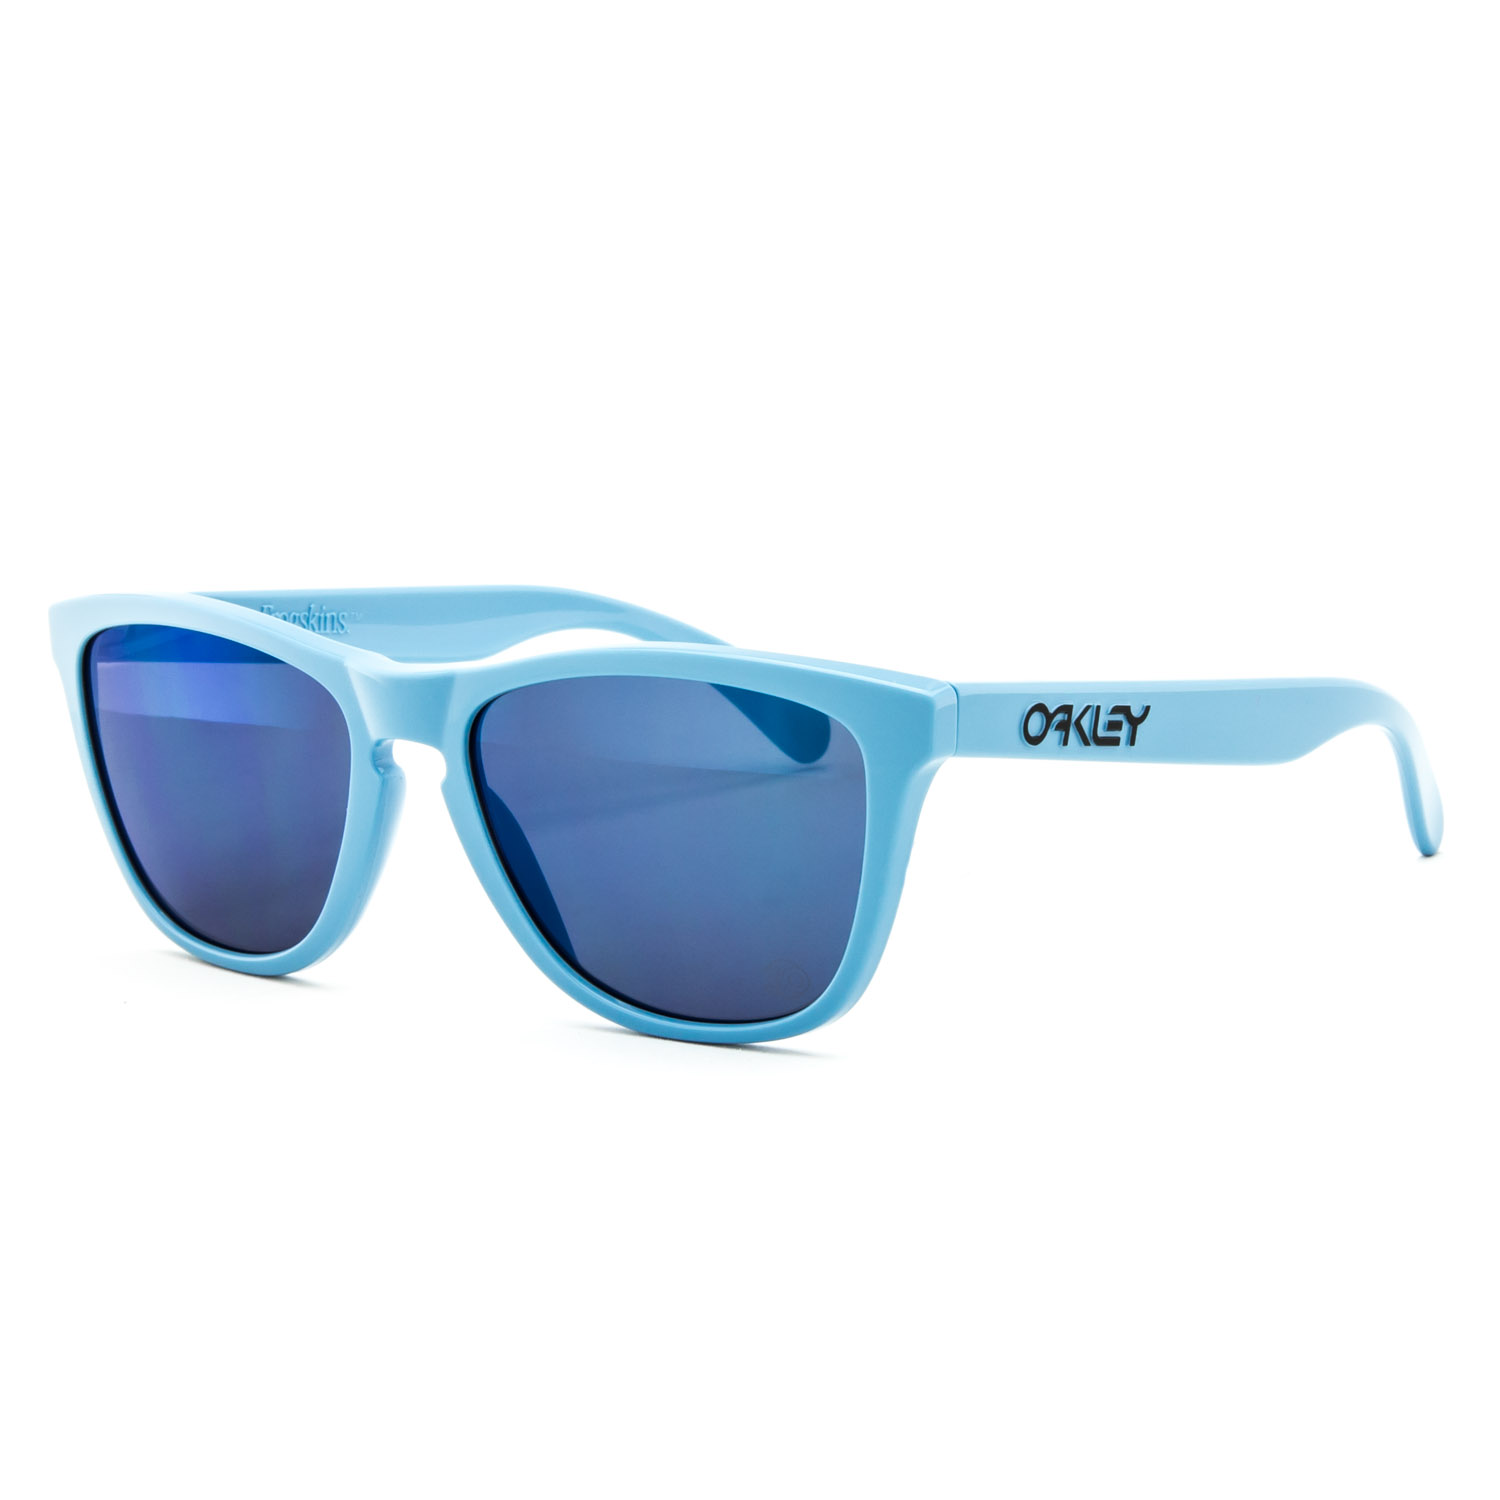 authentic oakley lenses hyz0  main image